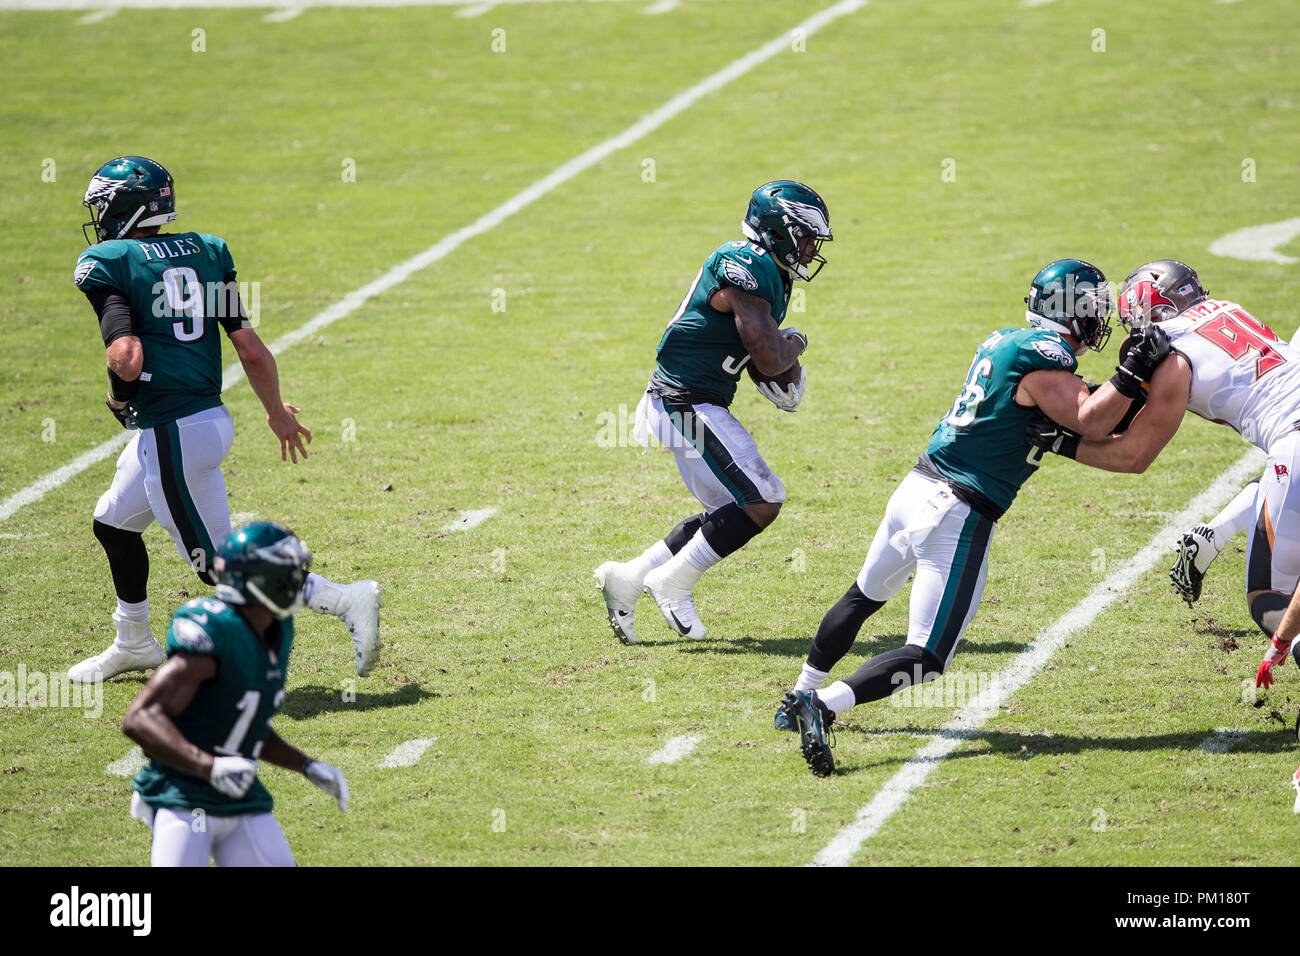 Tampa, Florida, USA. 16th Sep, 2018. Philadelphia Eagles running back Corey Clement (30) takes a handoff from quarterback Nick Foles (9) during the game against Tampa Bay Buccaneers at Raymond James Stadium on Sunday September 16, 2018 in Tampa, Florida. Credit: Travis Pendergrass/ZUMA Wire/Alamy Live News - Stock Image